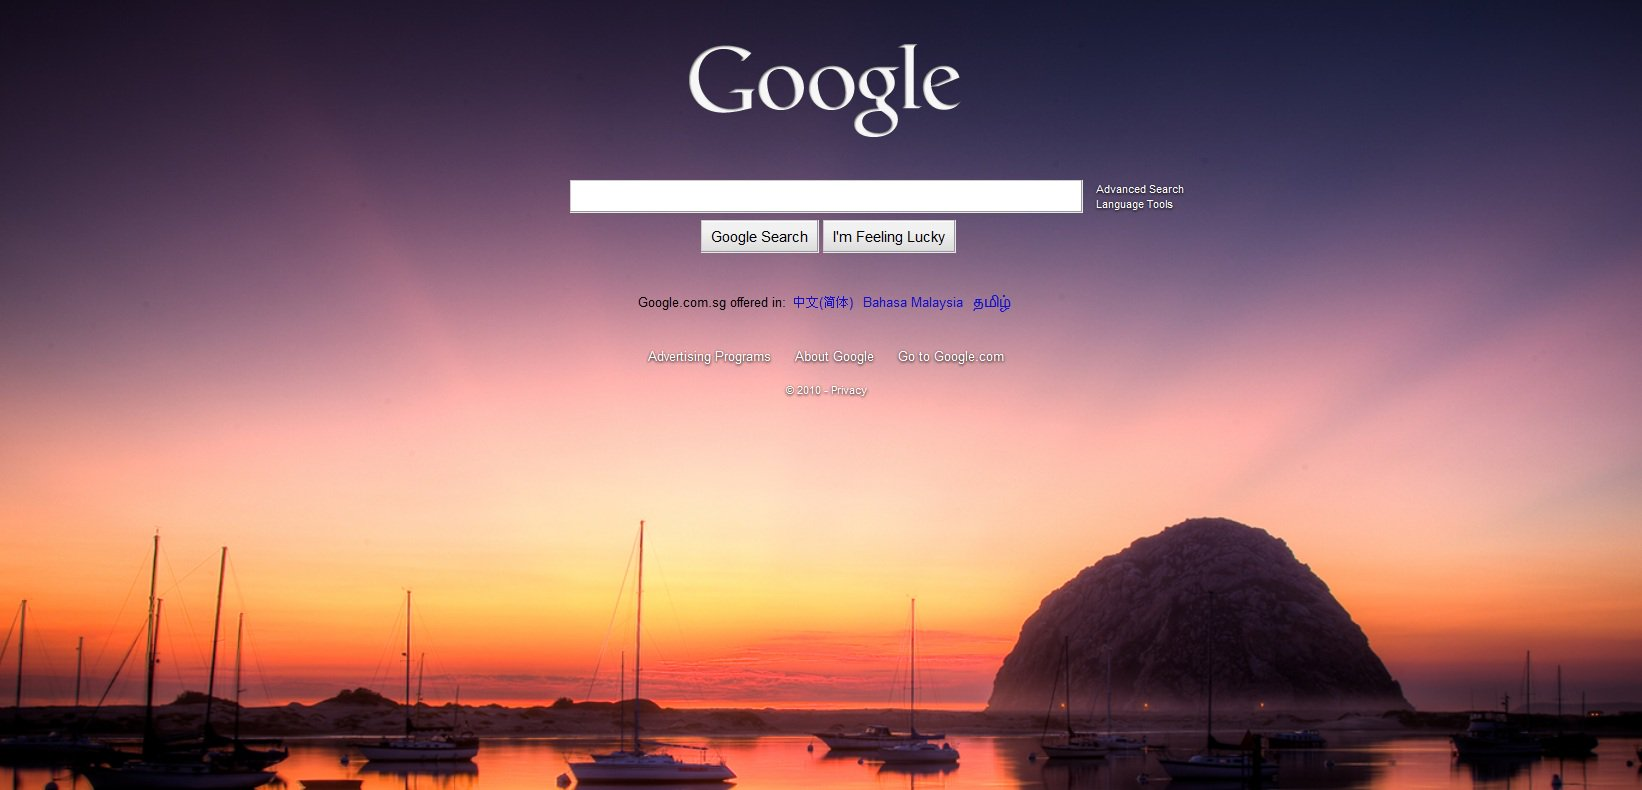 Google homepage wallpaper wallpapersafari for Homepage wallpaper